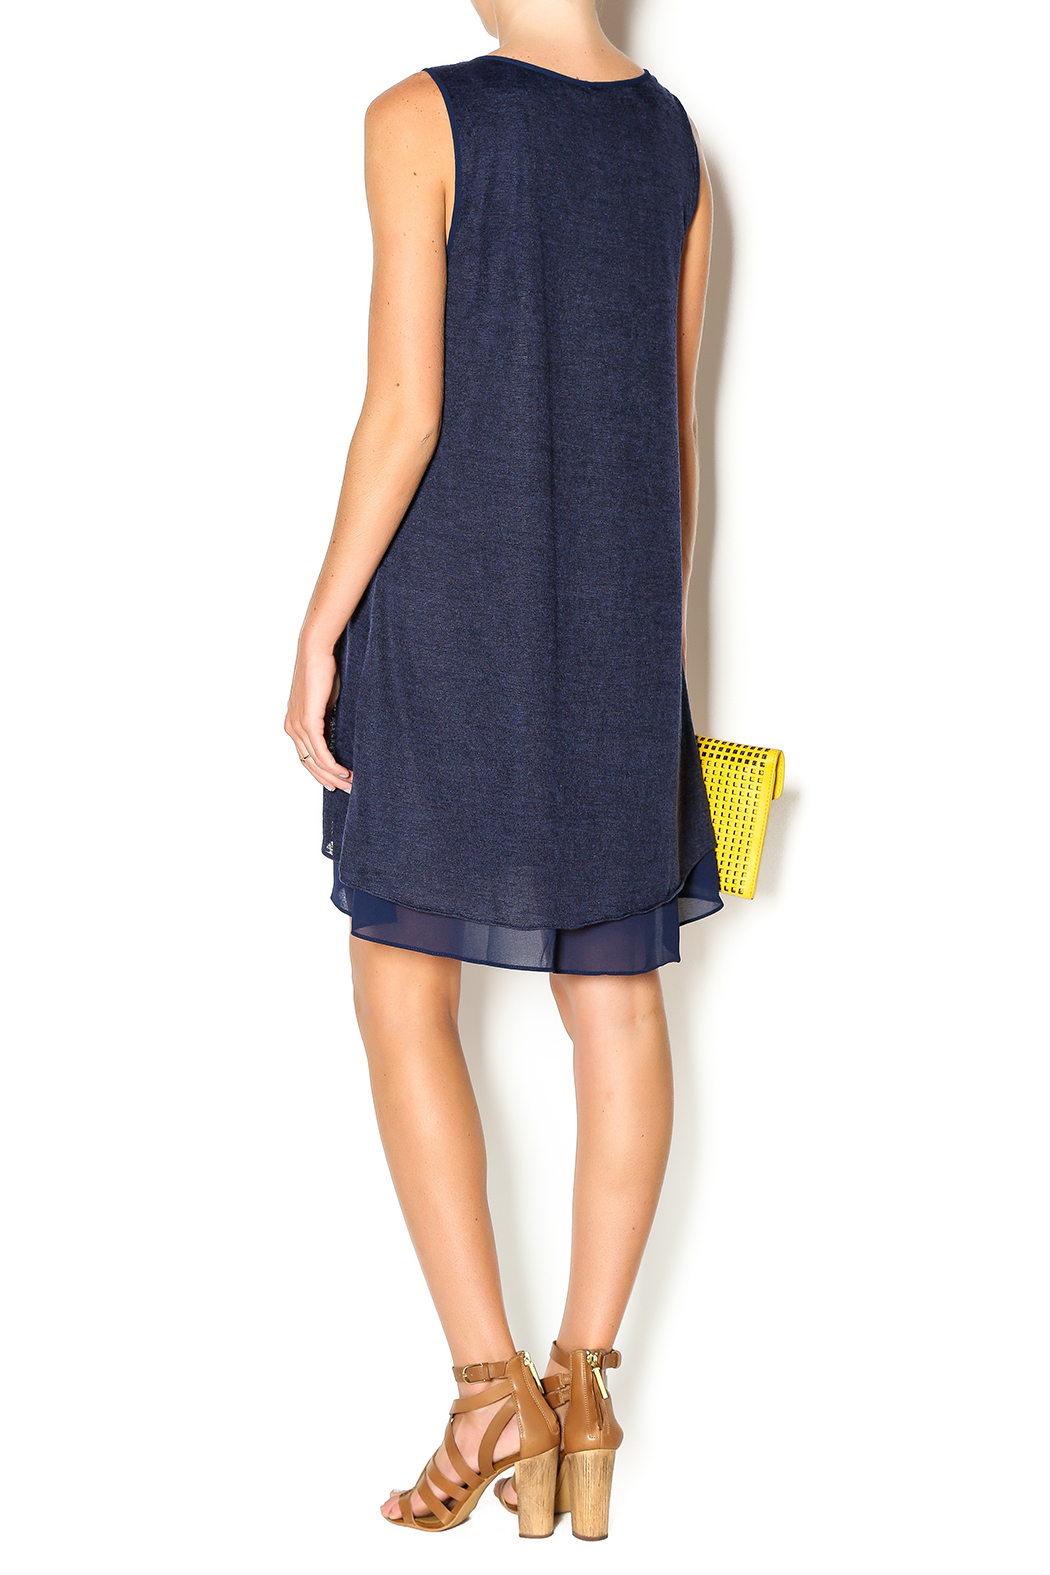 Miilla Navy Shift Dress from Chicago by Belle Noire Boutique ...